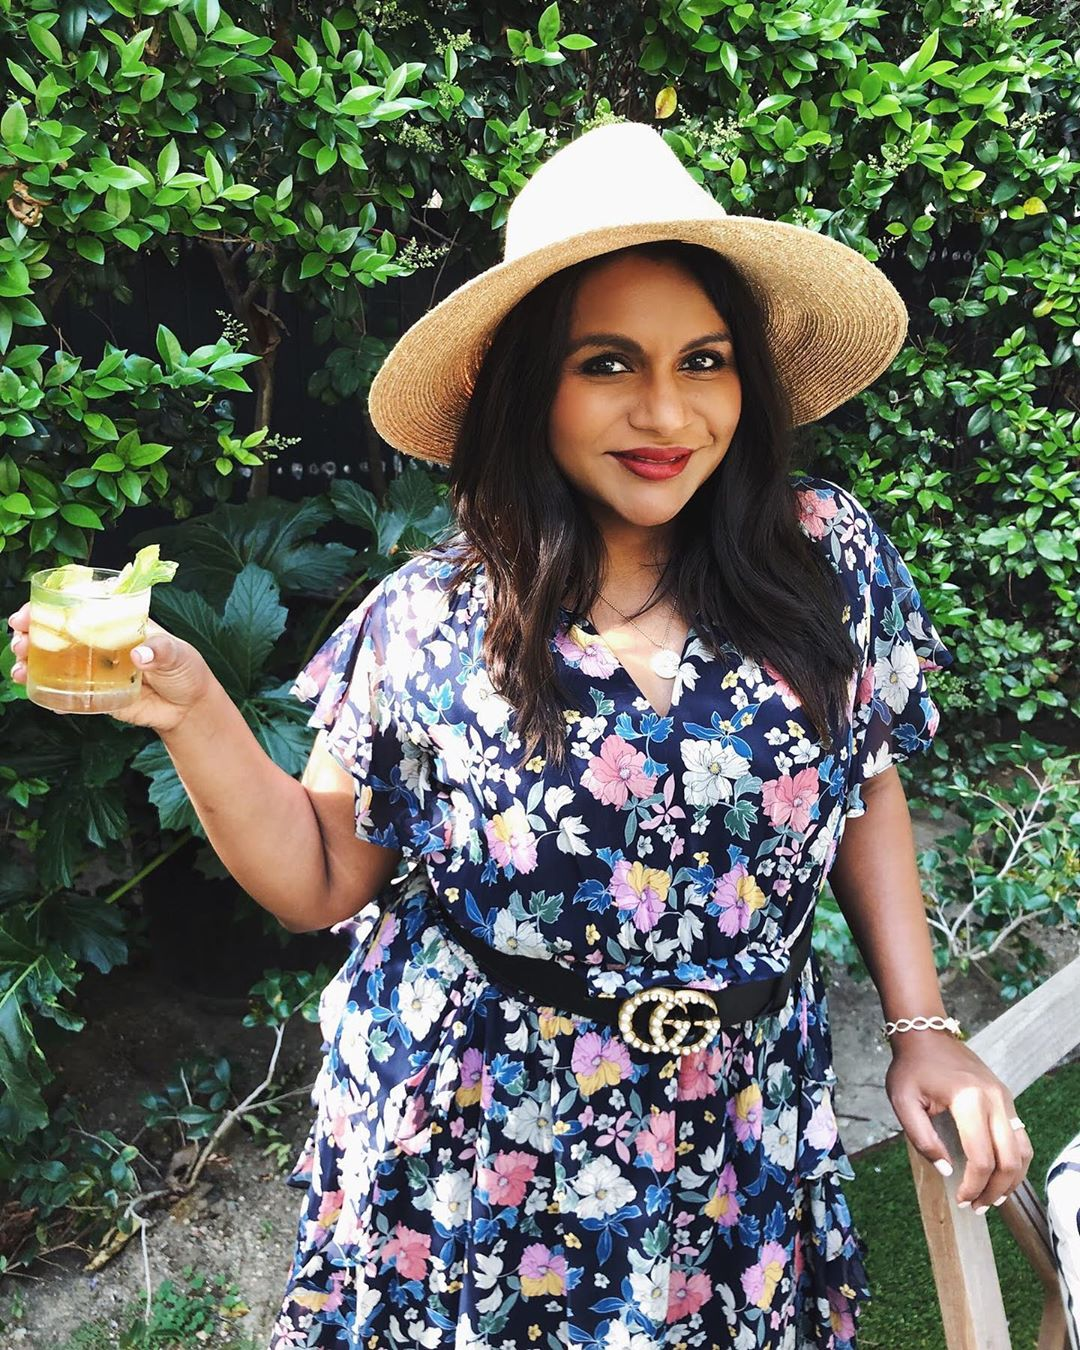 Beach Outfit Ideas - Mindy Kaling